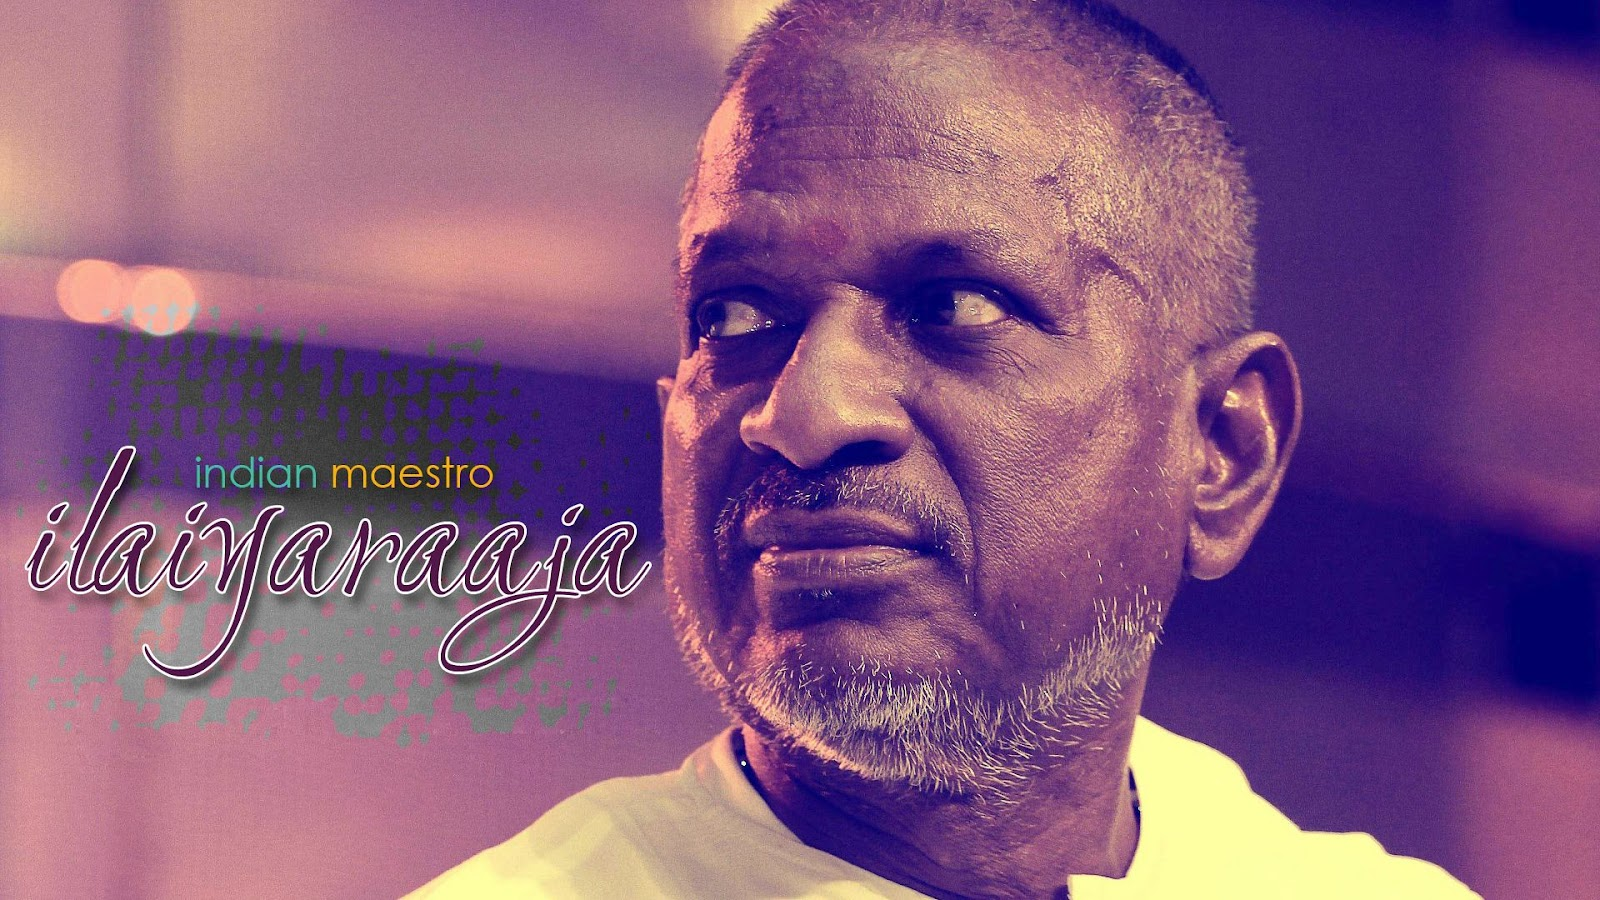 ilayaraja tamil songs list pdf